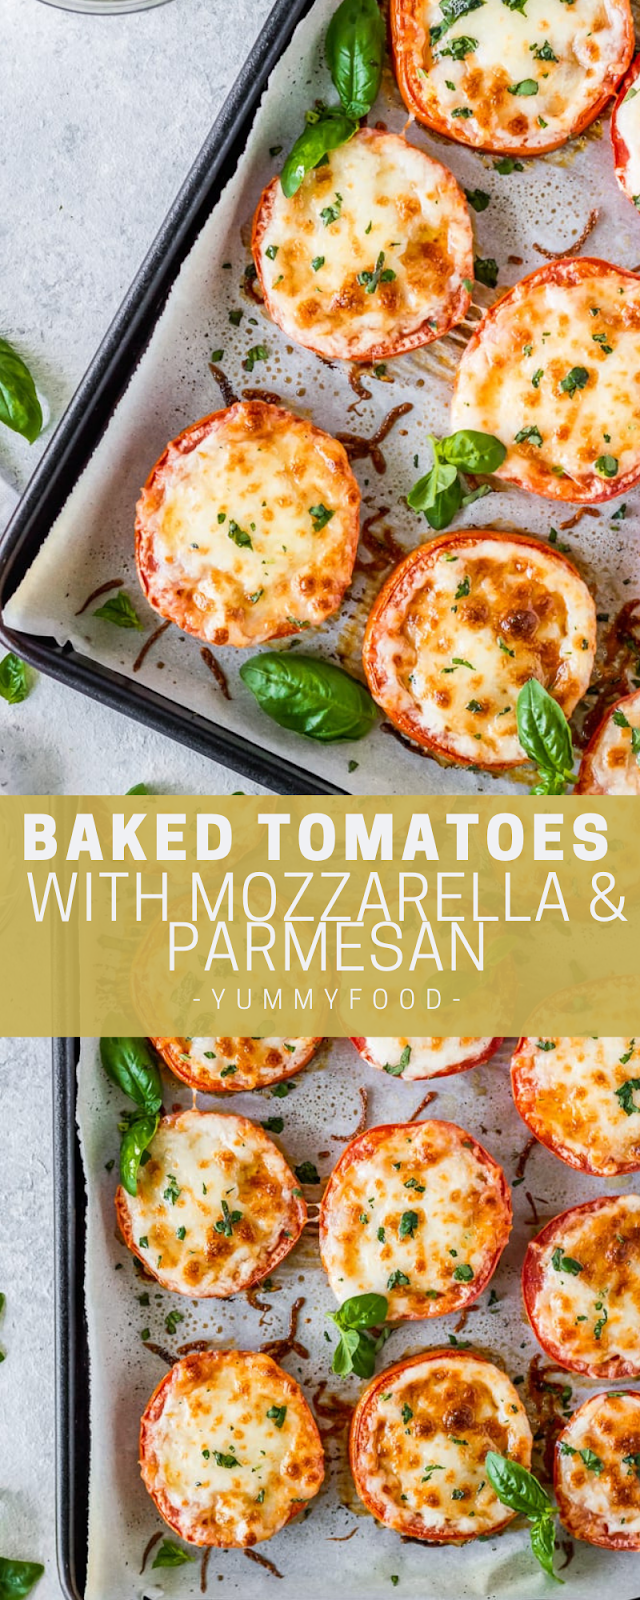 BAKED TOMATOES WITH MOZZARELLA AND PARMESAN